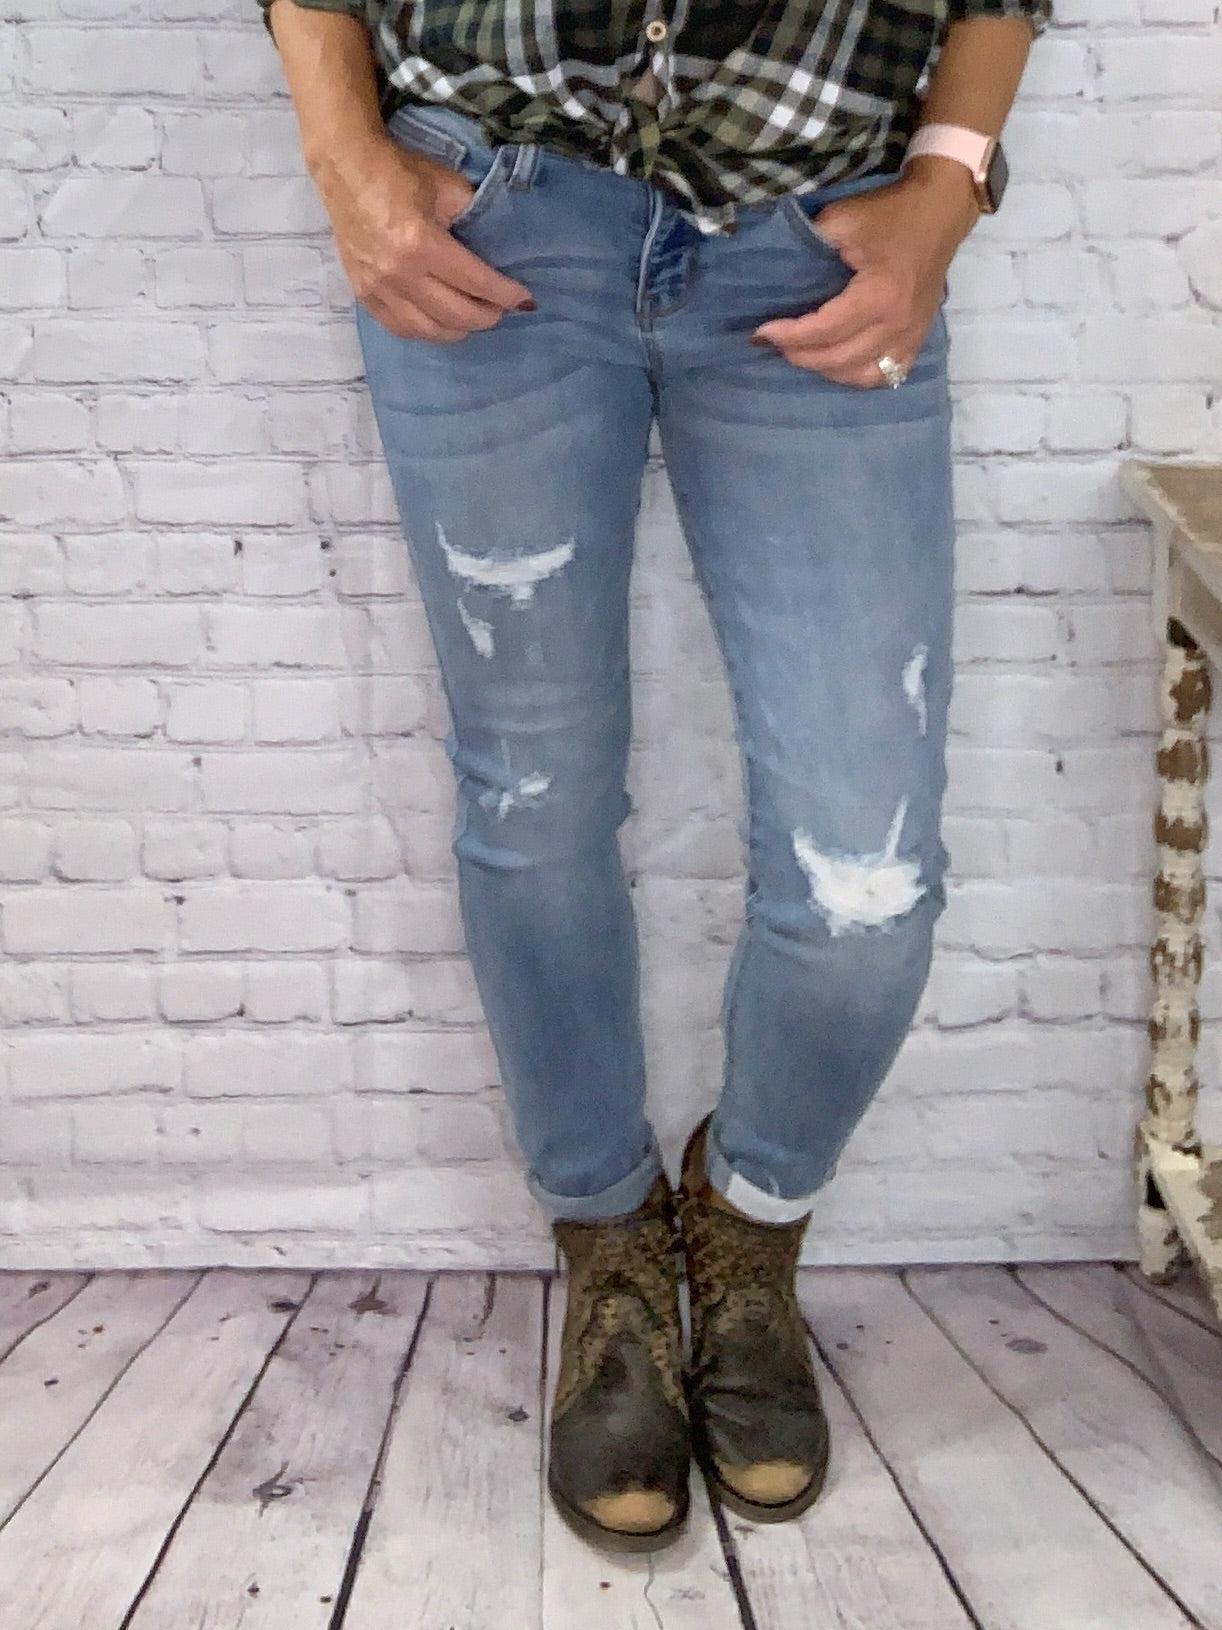 Hot Mess Jeans - Distressed Judy Blue Jeans